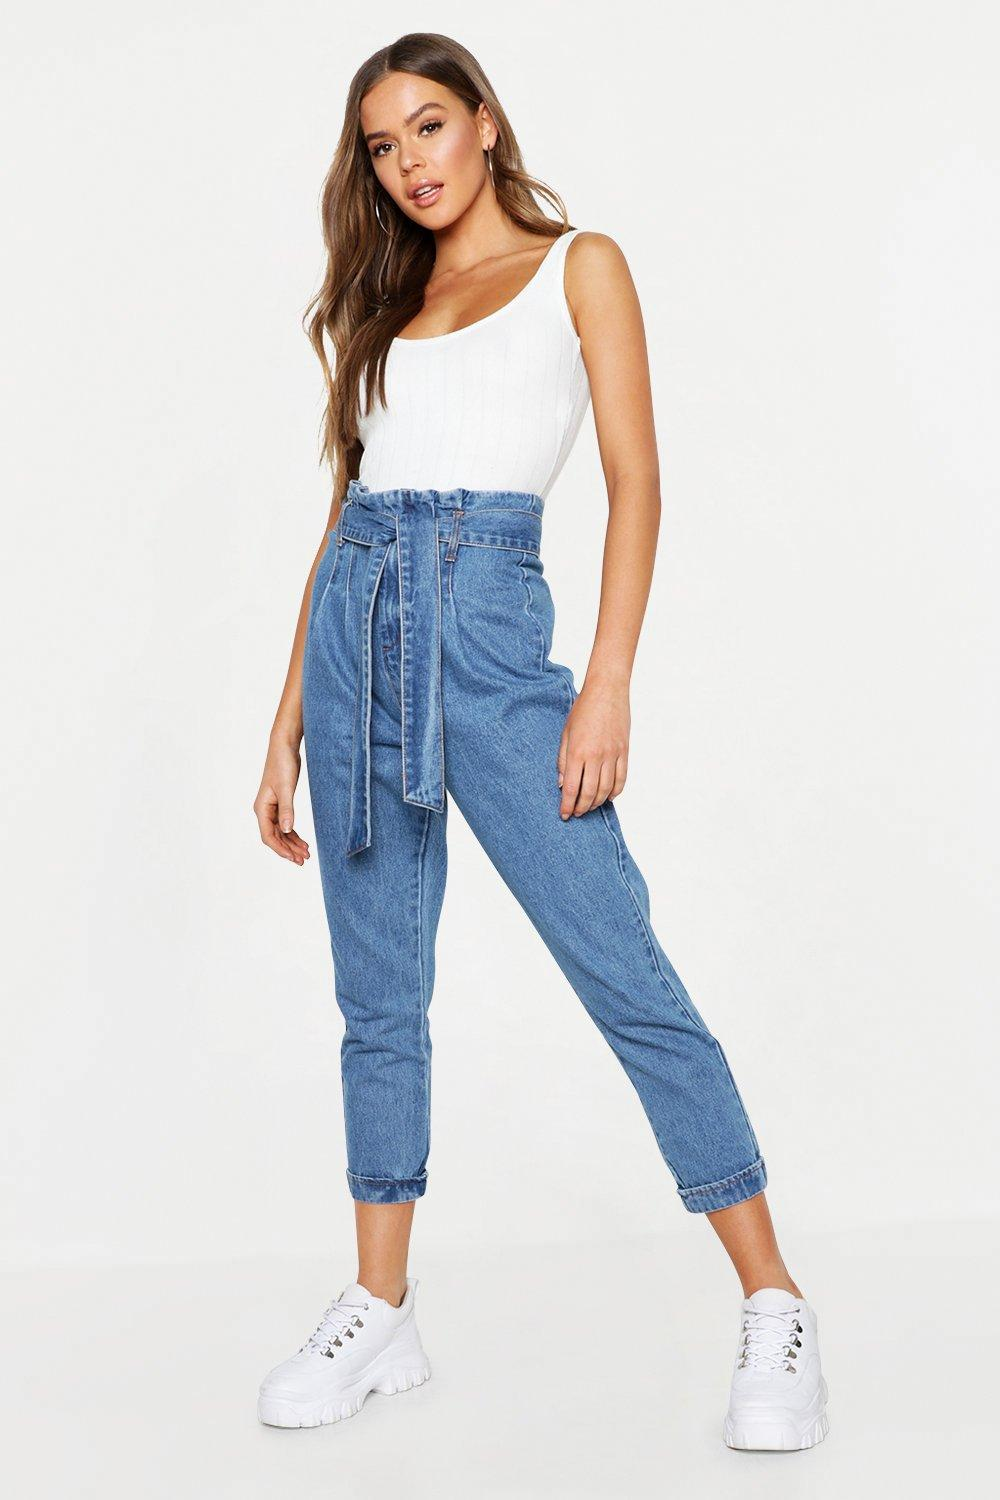 Vintage High Waisted Trousers, Sailor Pants, Jeans Womens High Rise Paper Bag Waist Tapered Mom Jean - Blue - 12 $25.00 AT vintagedancer.com